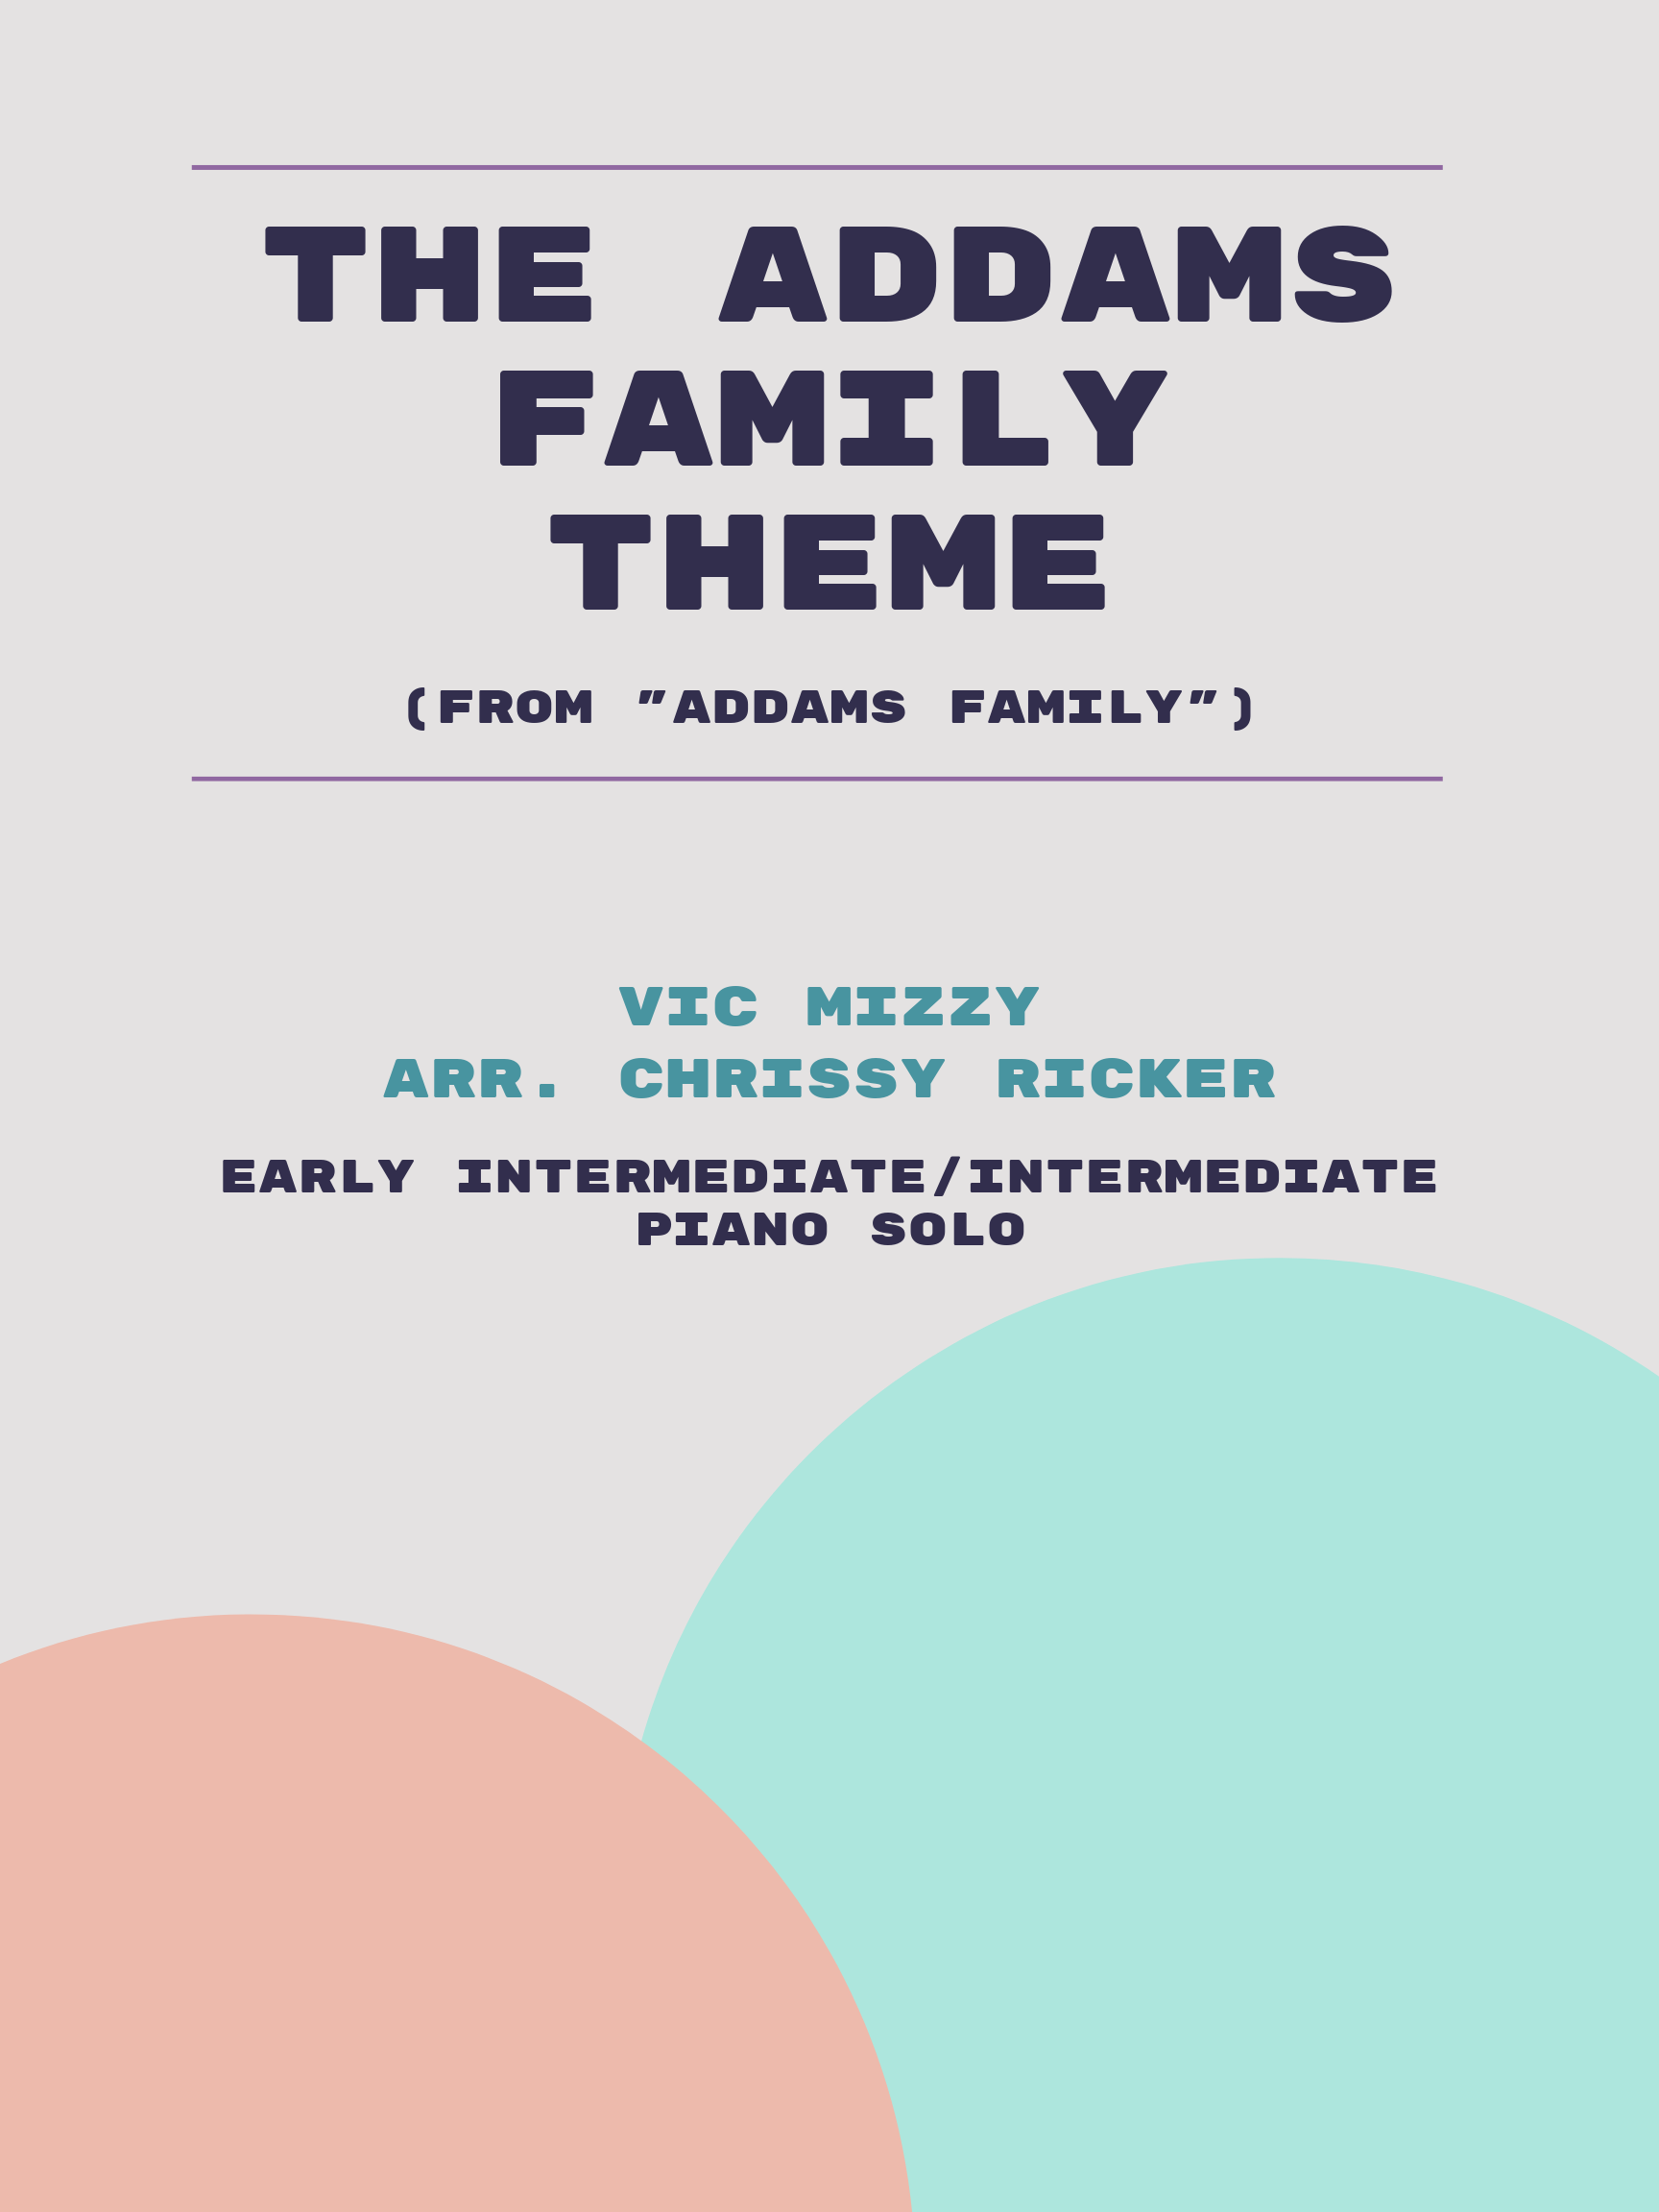 The Addams Family Theme by Vic Mizzy